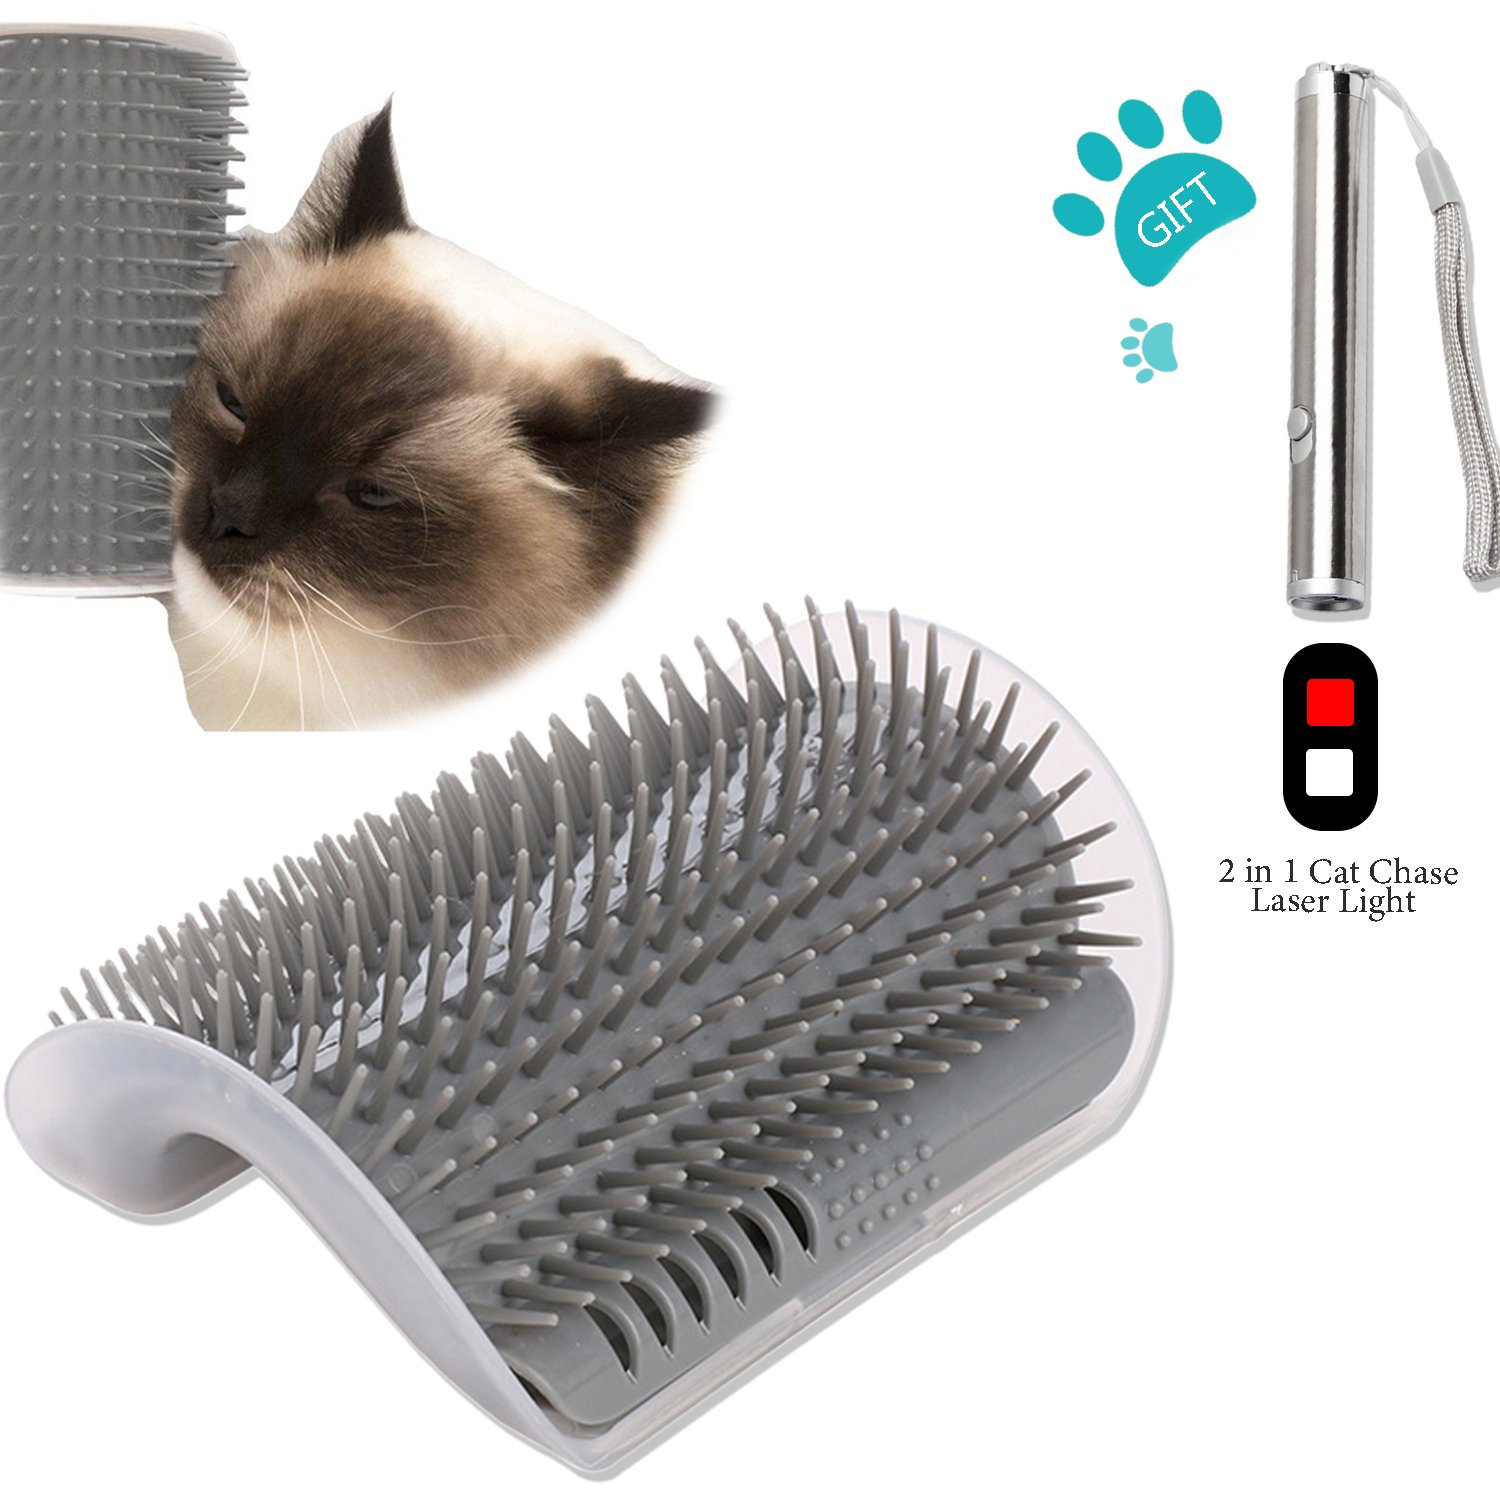 Ocathnon Cats Self Grooming Tool Corner Cats Brush With Catnip Massager Hair Shedding Trimming Comb For Cat, 1 x Cat Toy 2 in Flash Light Included